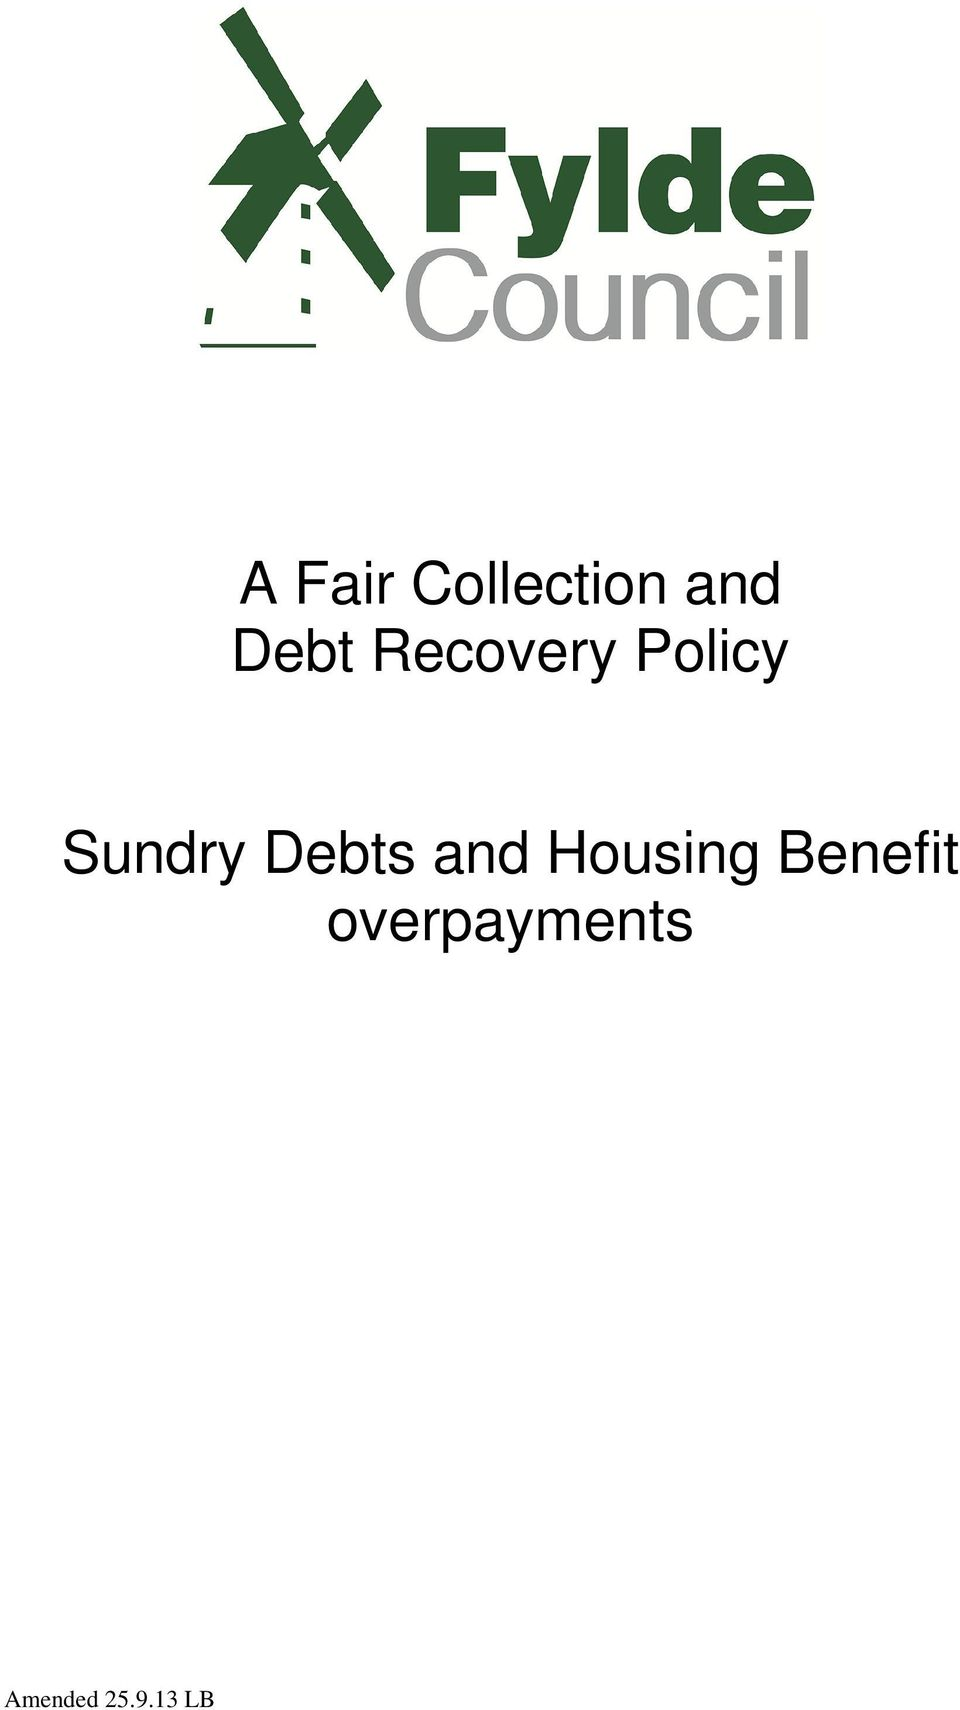 Sundry Debts and